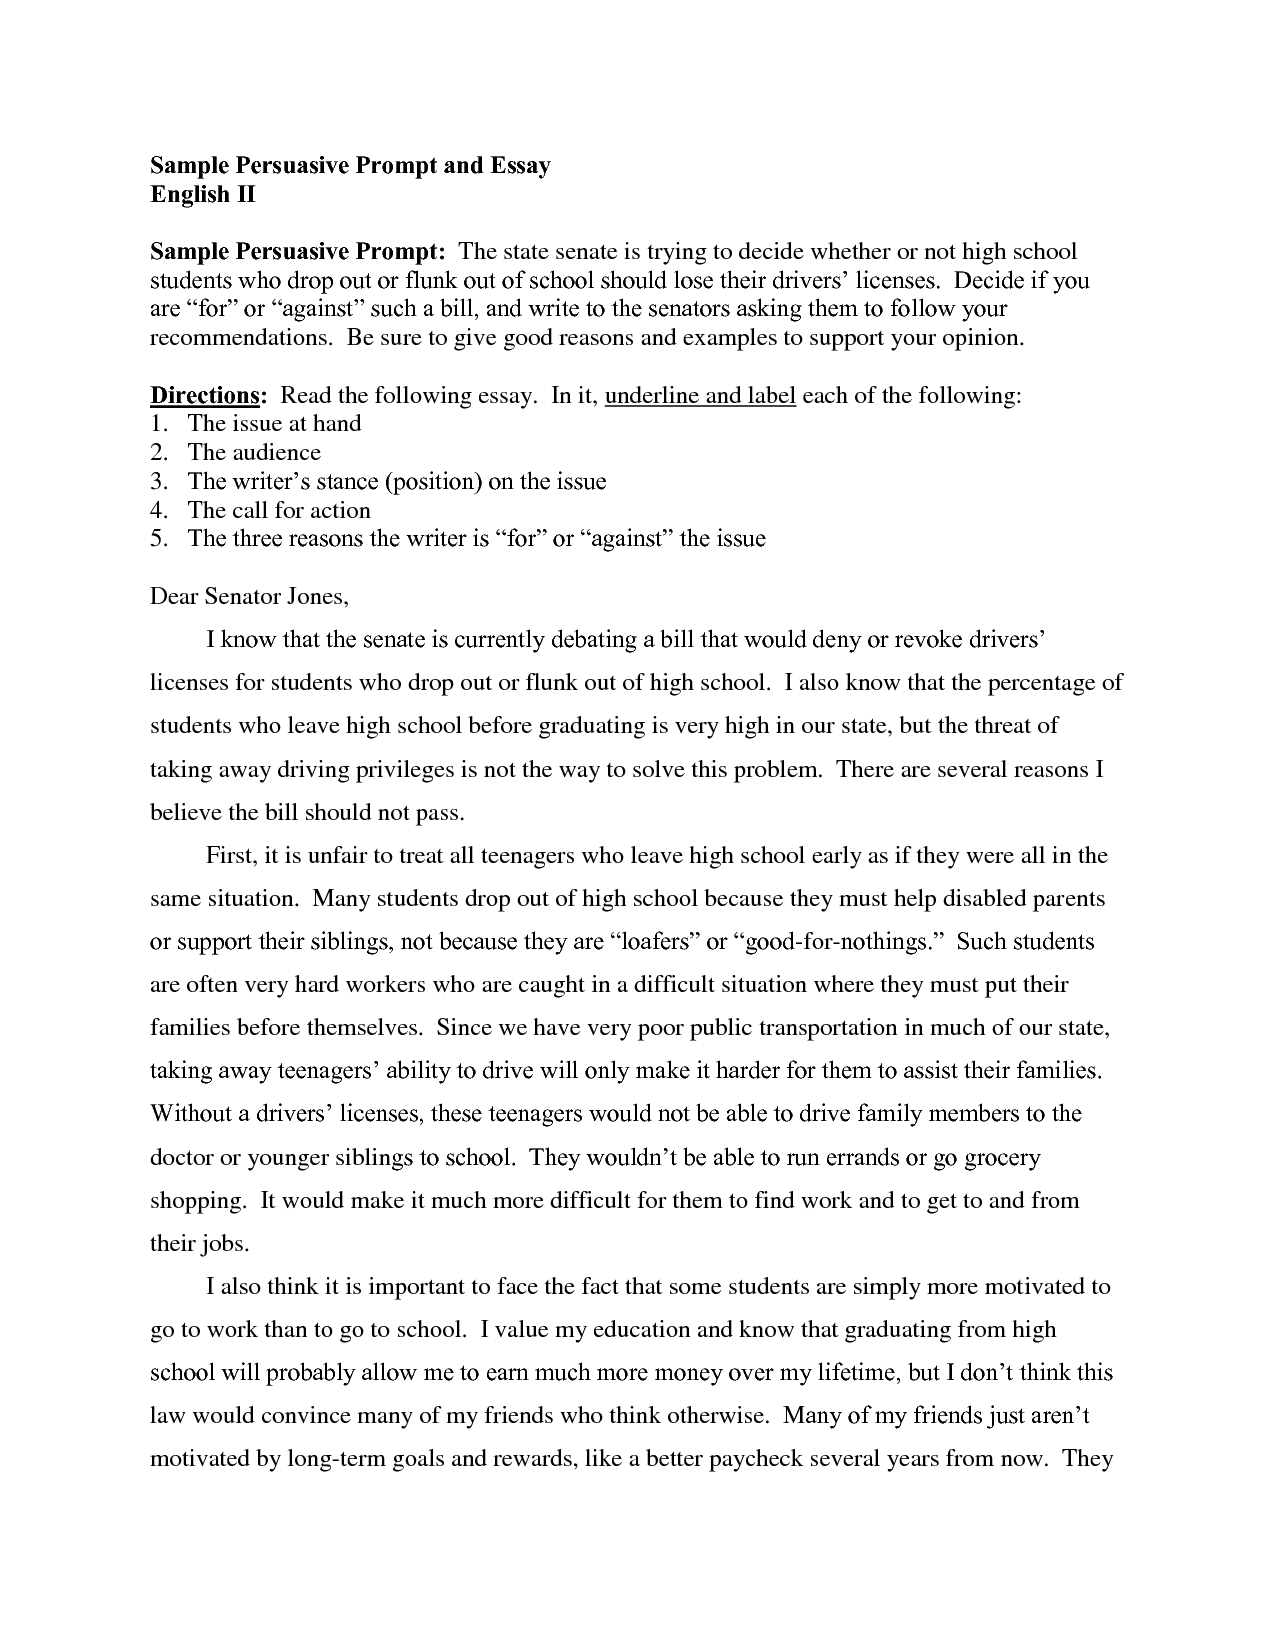 Persuasive essay sample high school